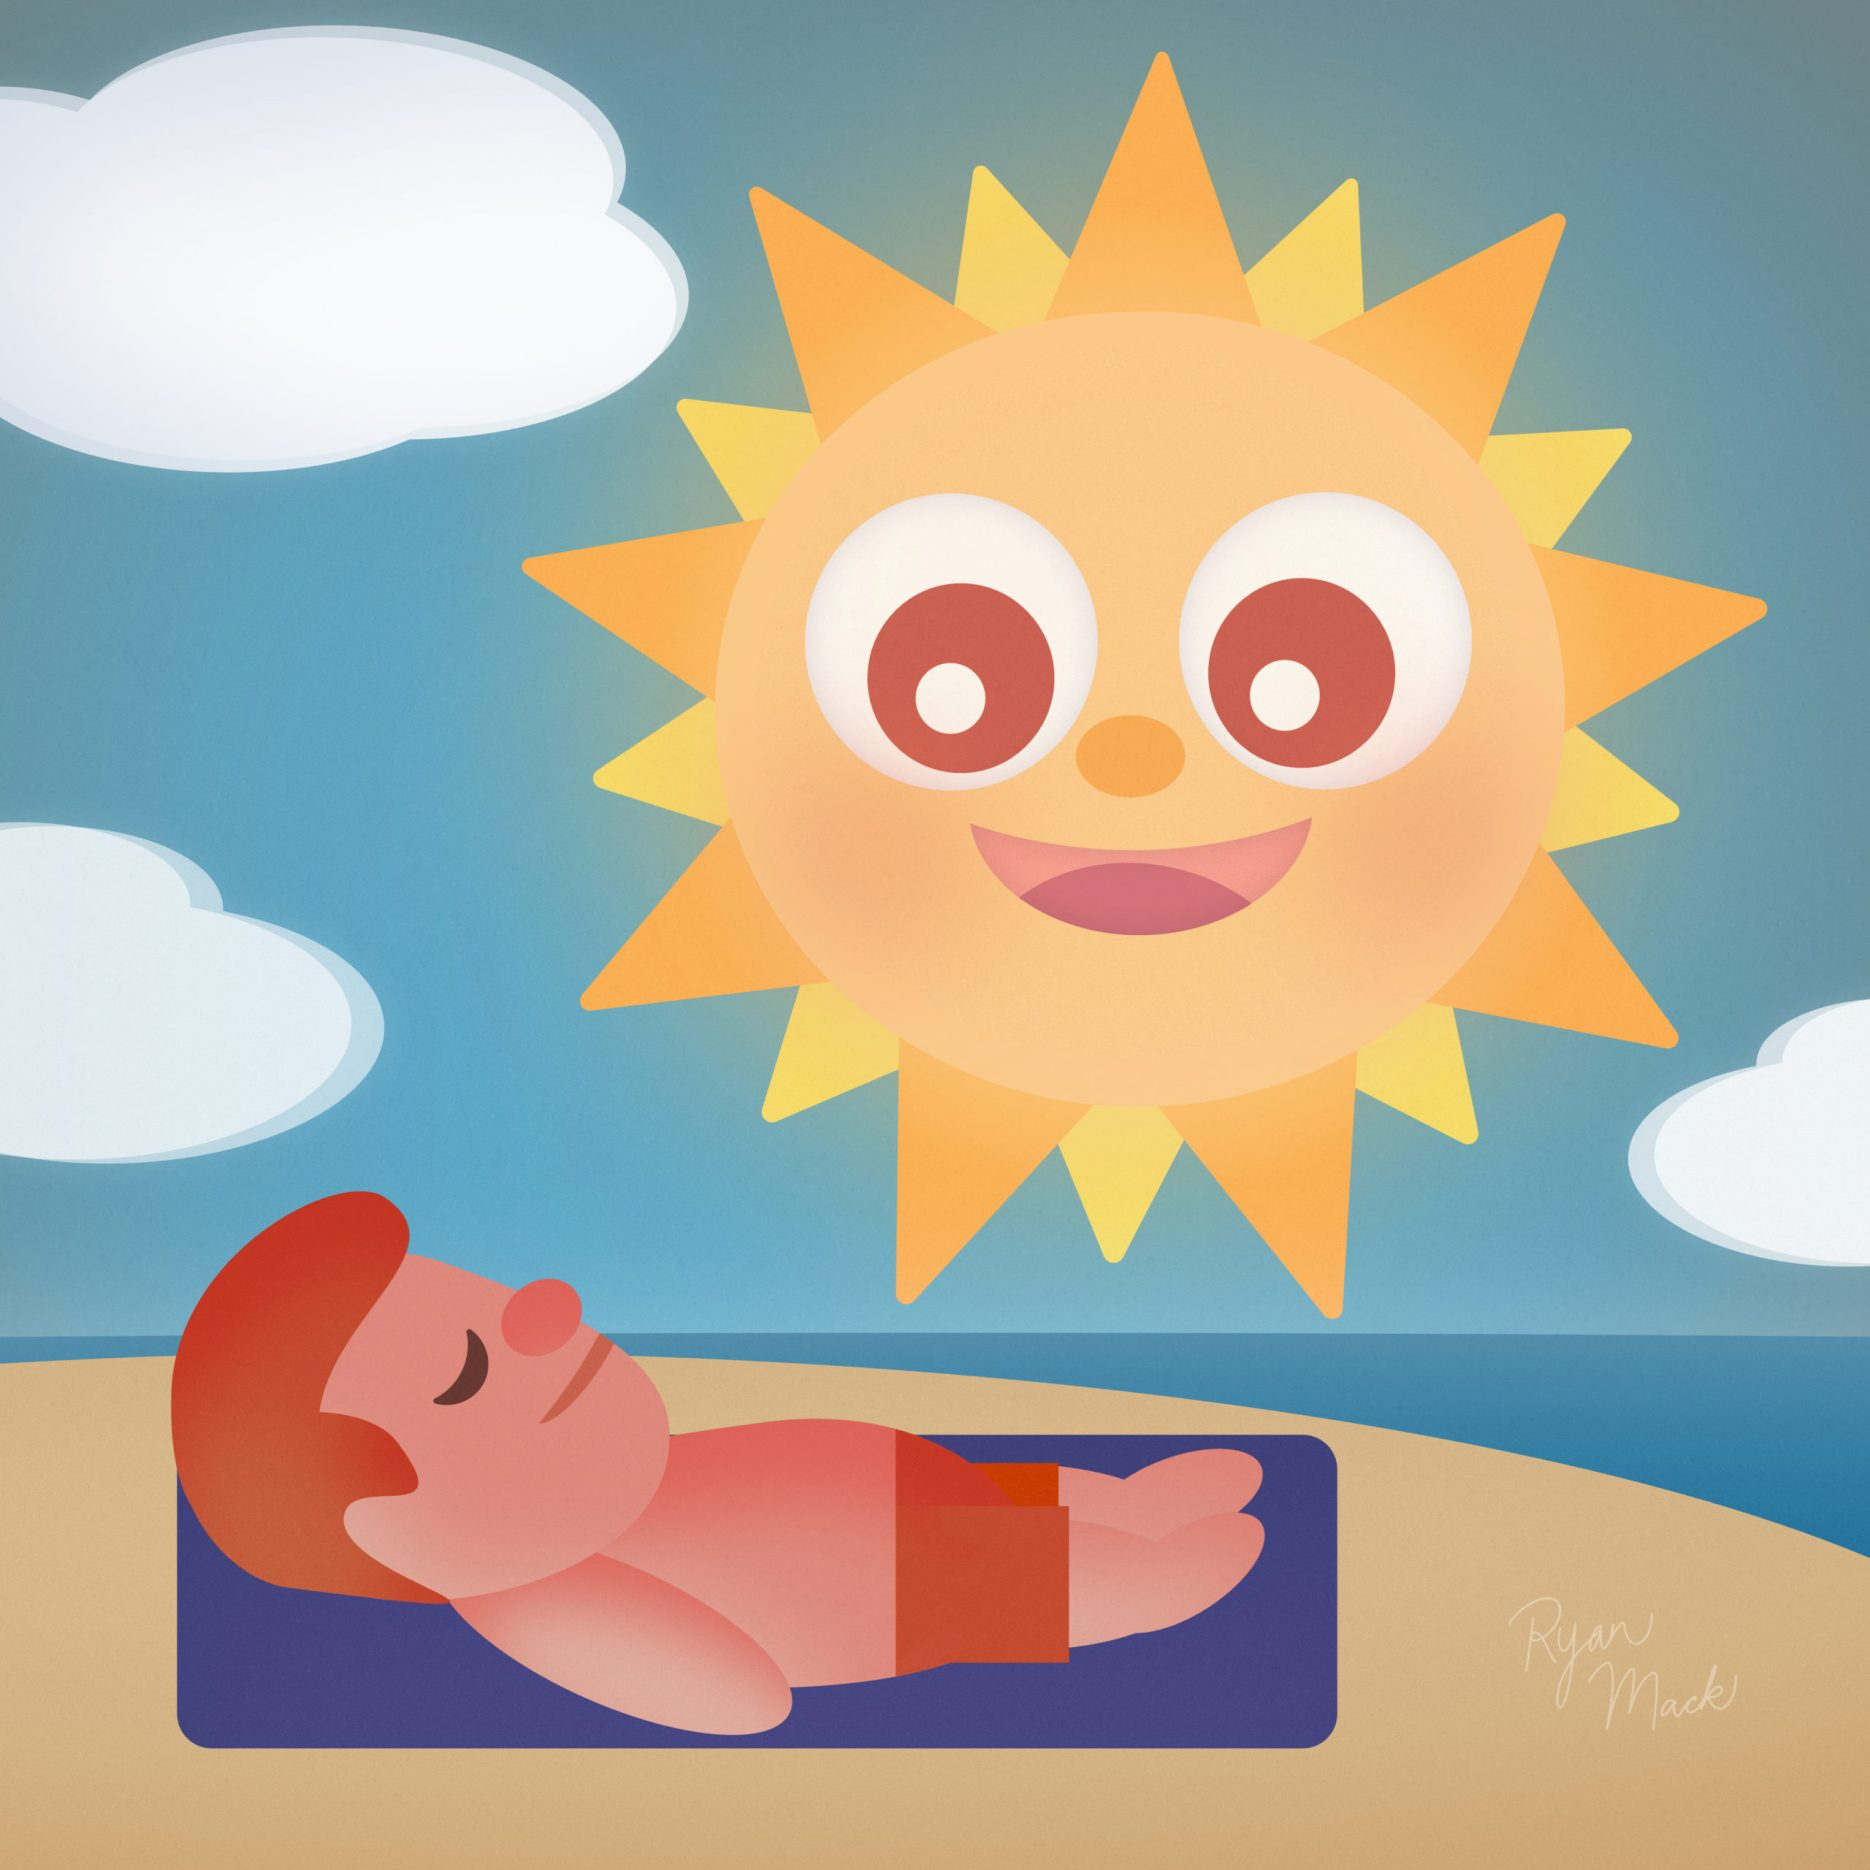 Man Getting Sunburnt by a Smiling Cartoon Sun